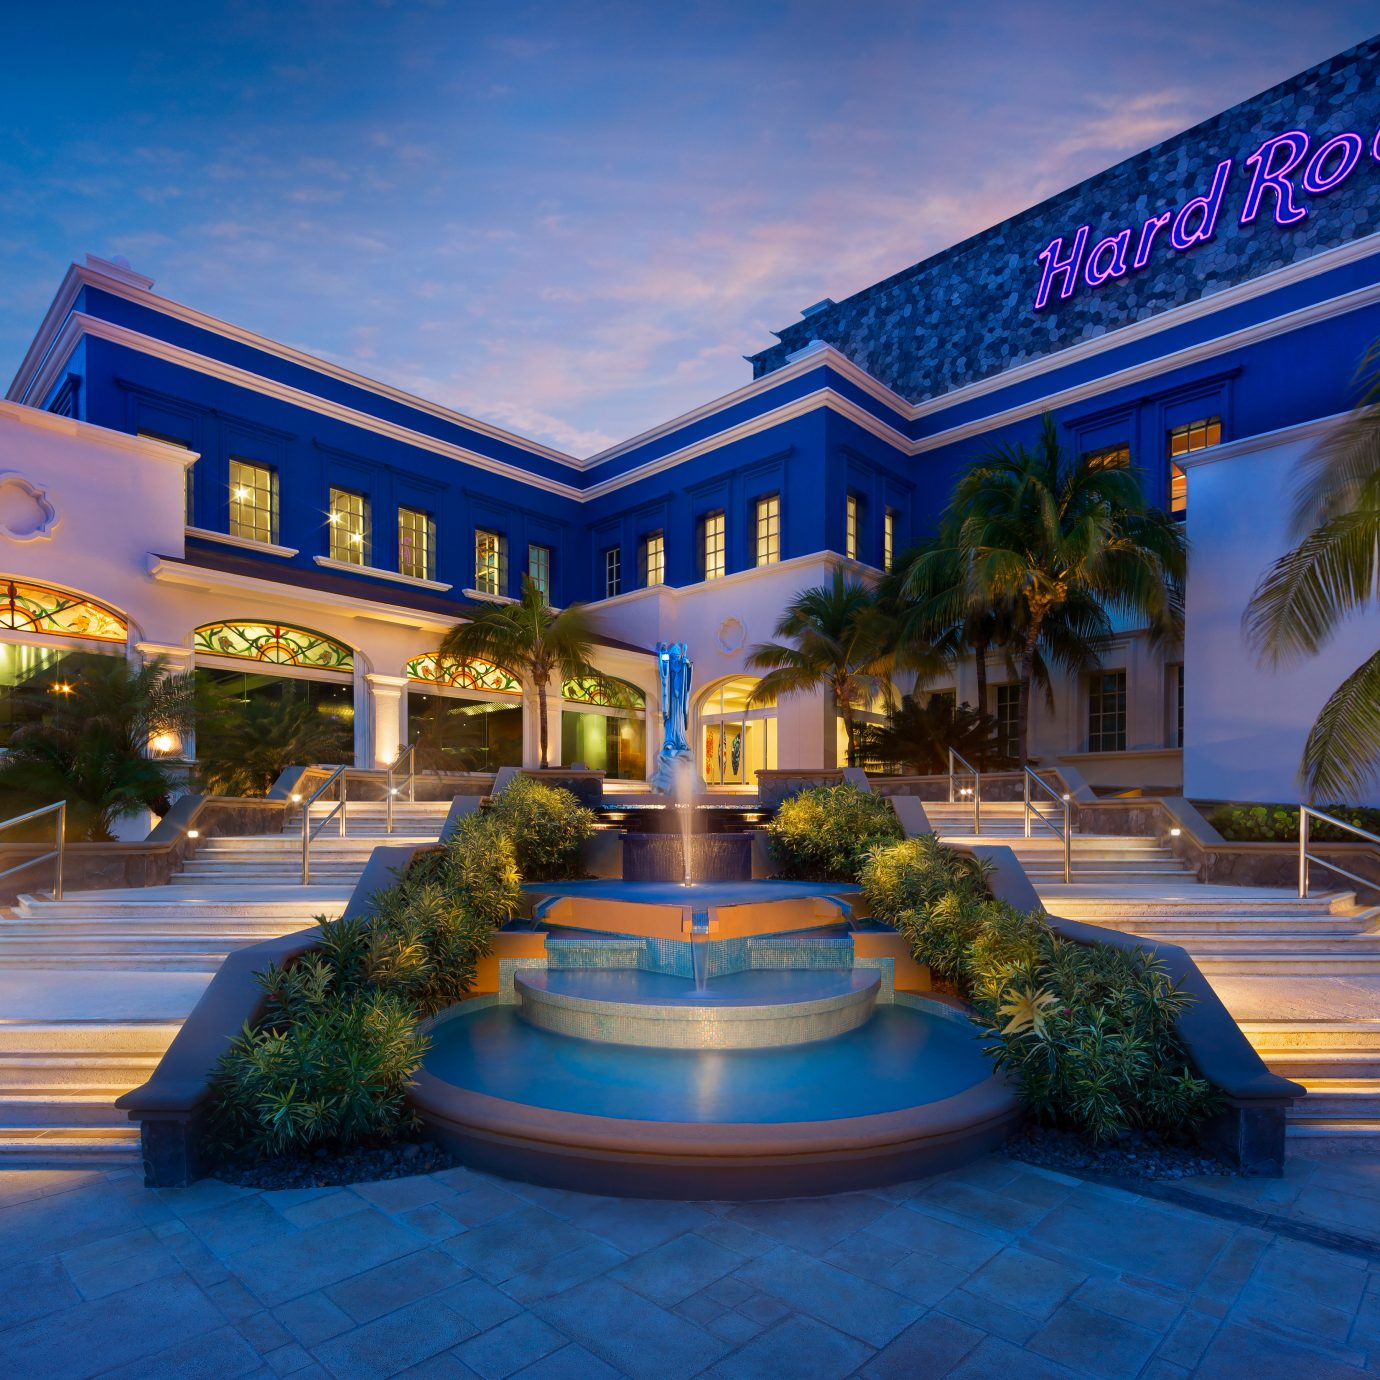 Exterior Grounds Modern Tropical leisure building Resort night plaza shopping mall sign